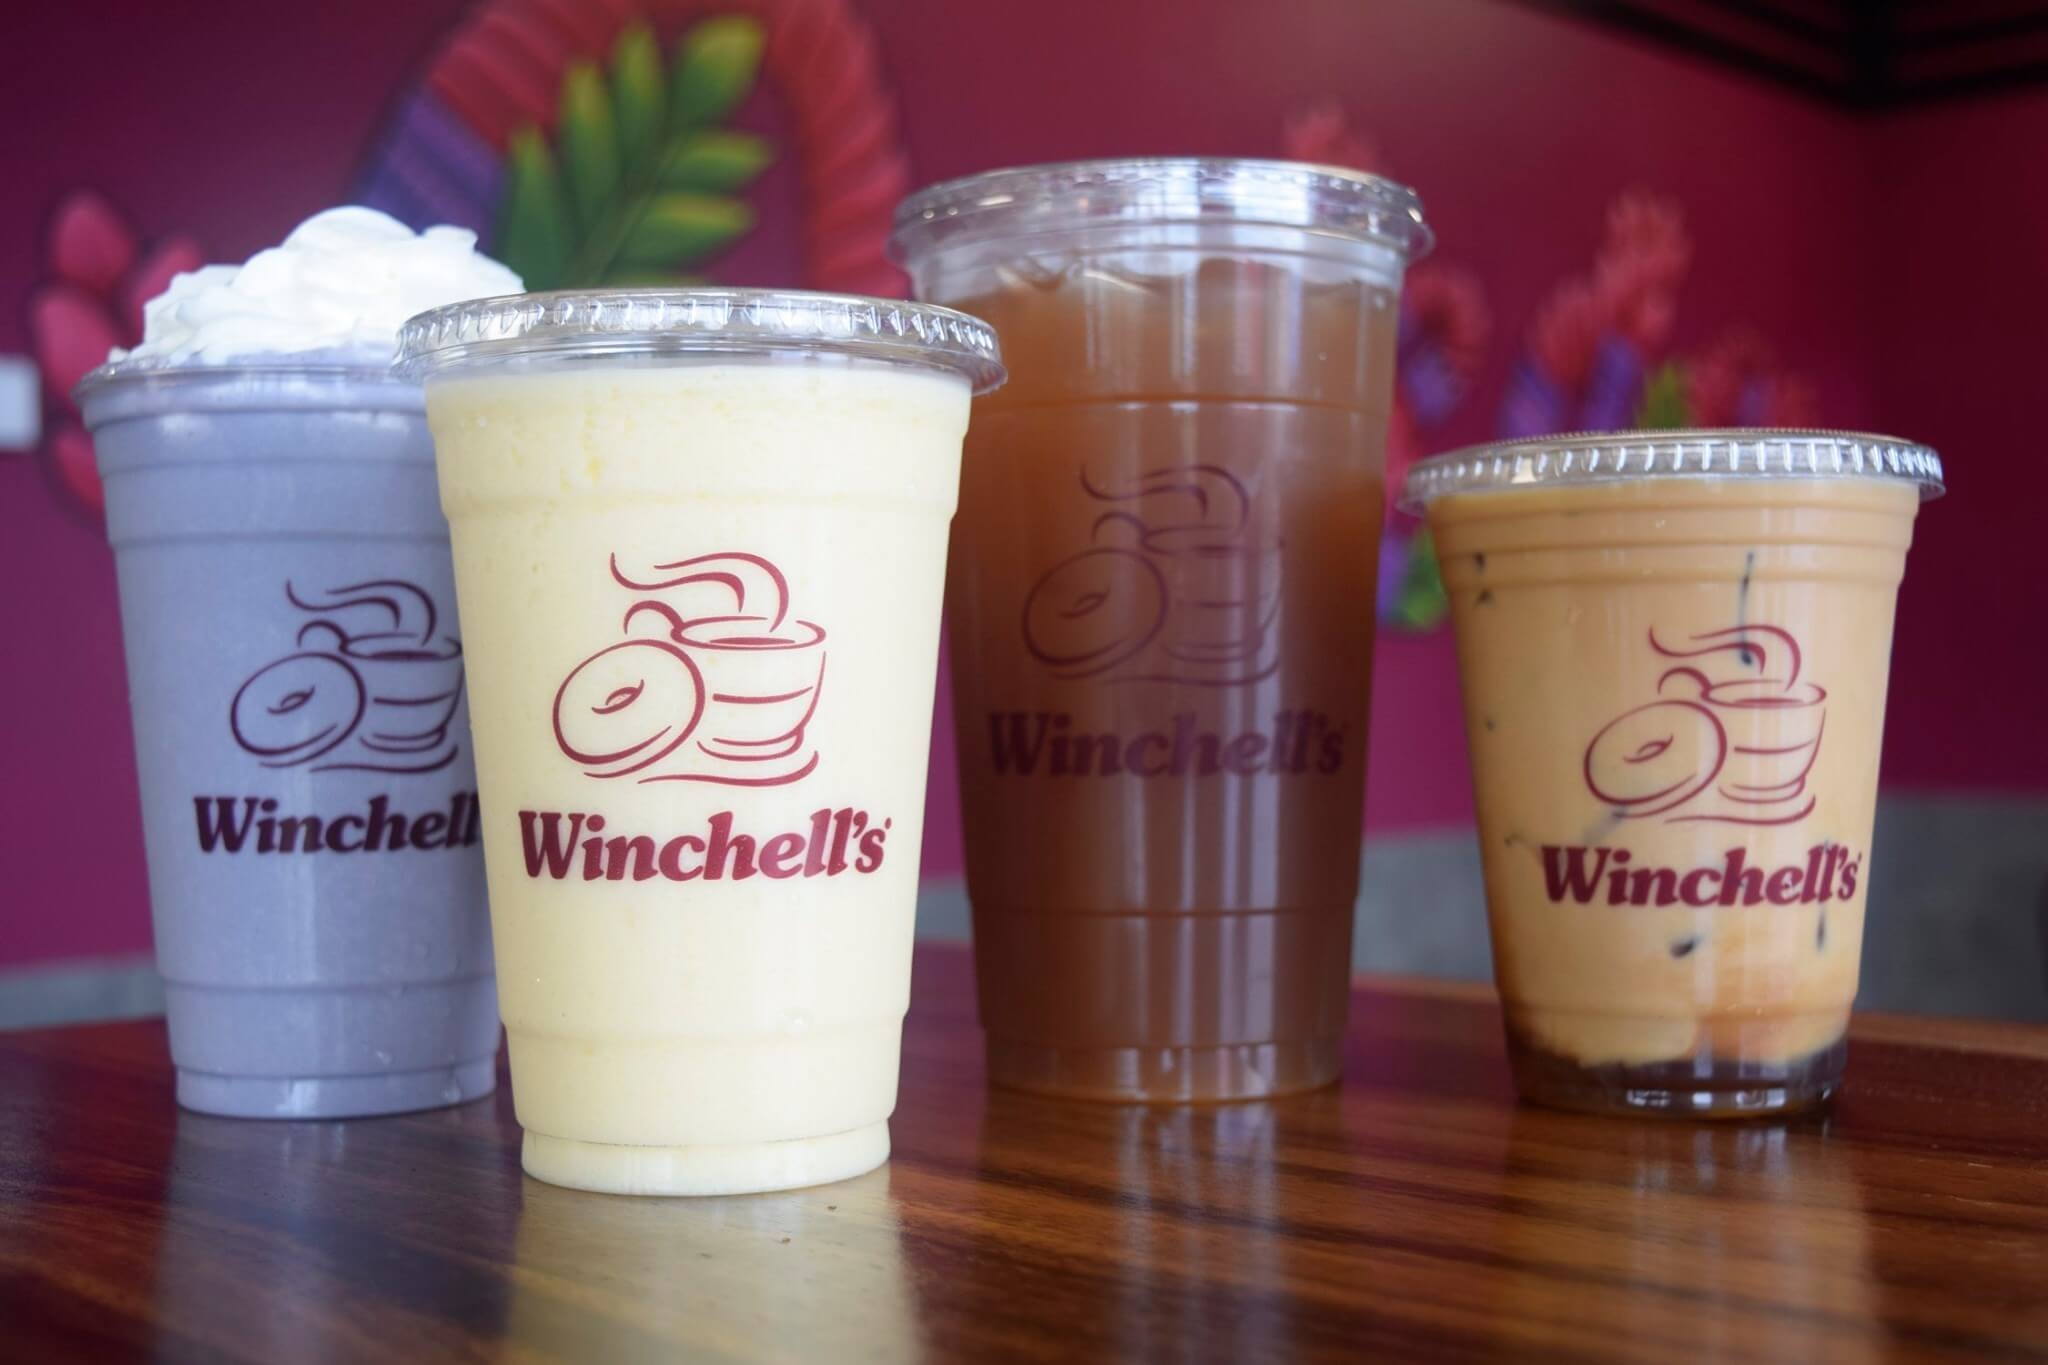 Winchell's Beverages